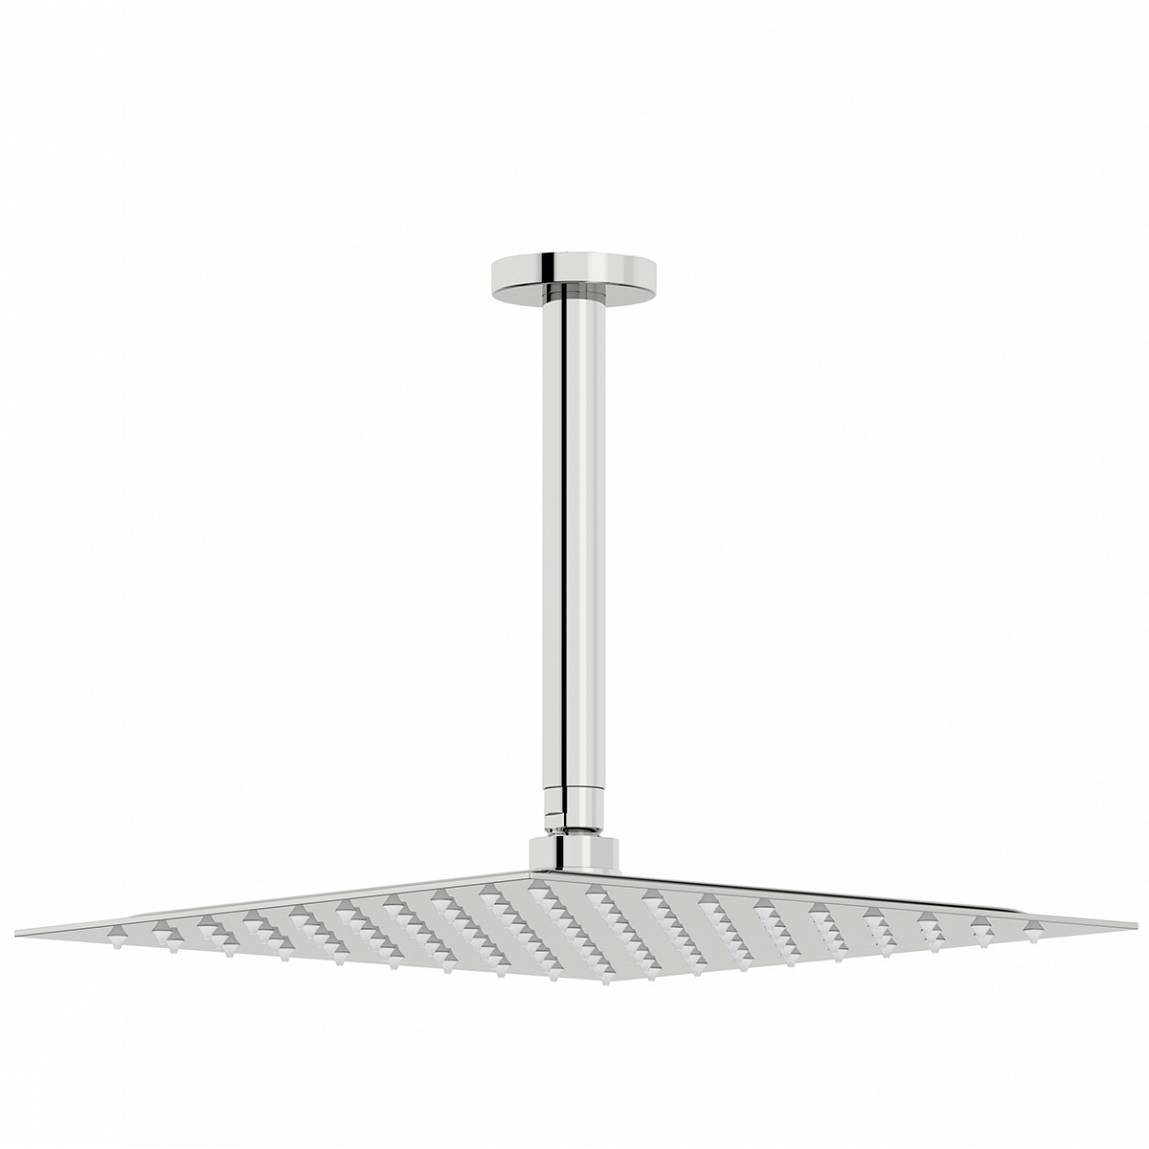 Image of Arcus 300mm Shower Head & Round Ceiling Arm